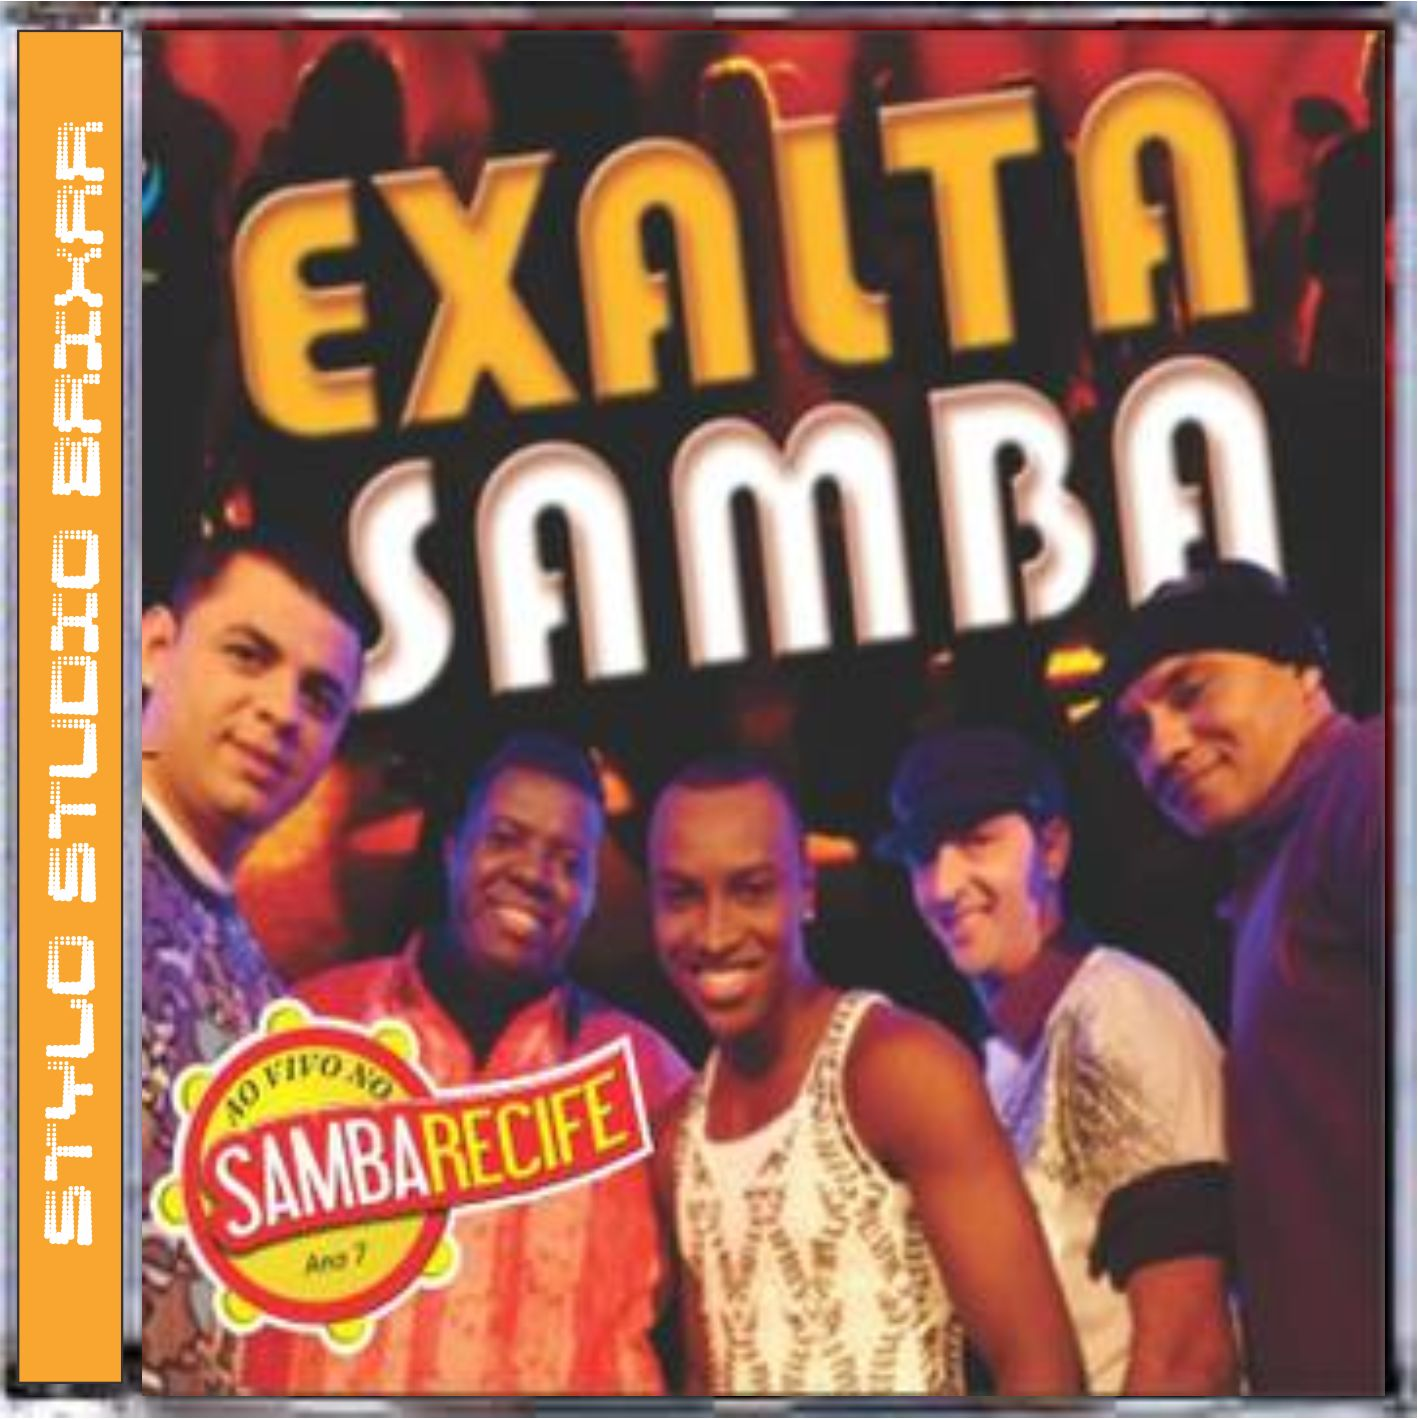 cd de exaltasamba no samba recife 2011